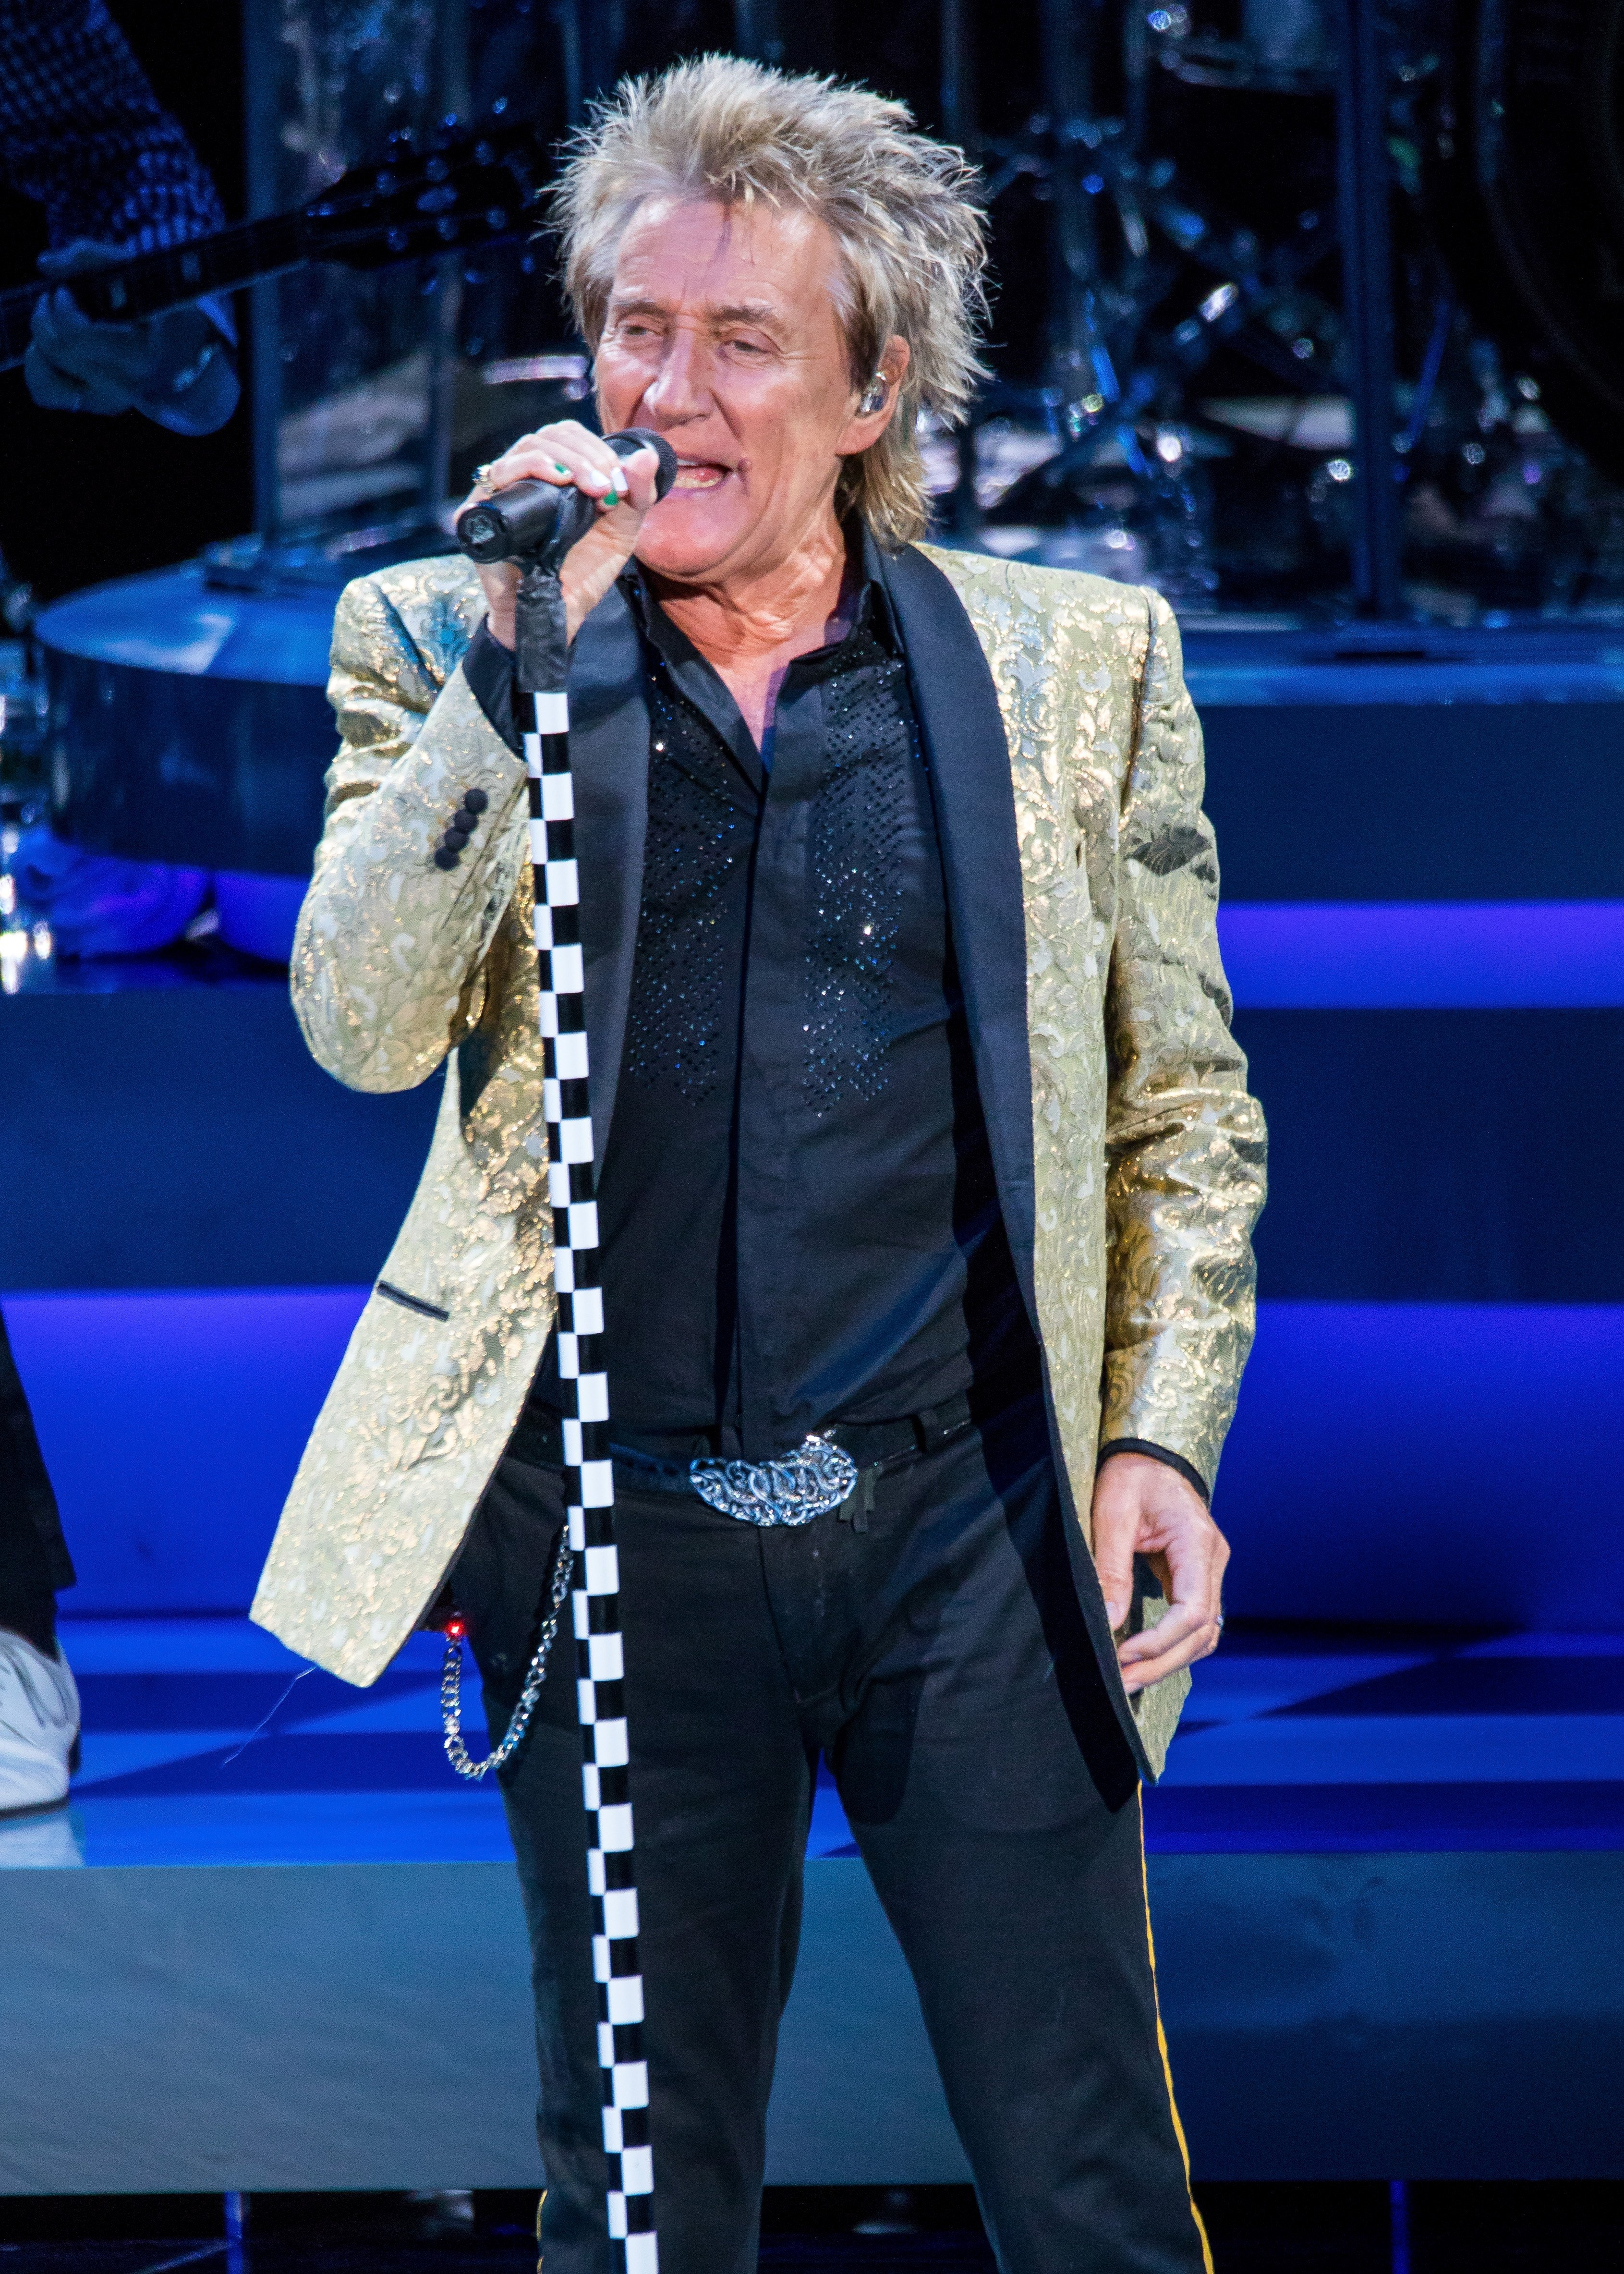 Sir Rod Stewart performs at DTE Energy Music Theater on August 1, 2017 in Clarkston, Michigan | Photo: Getty Images